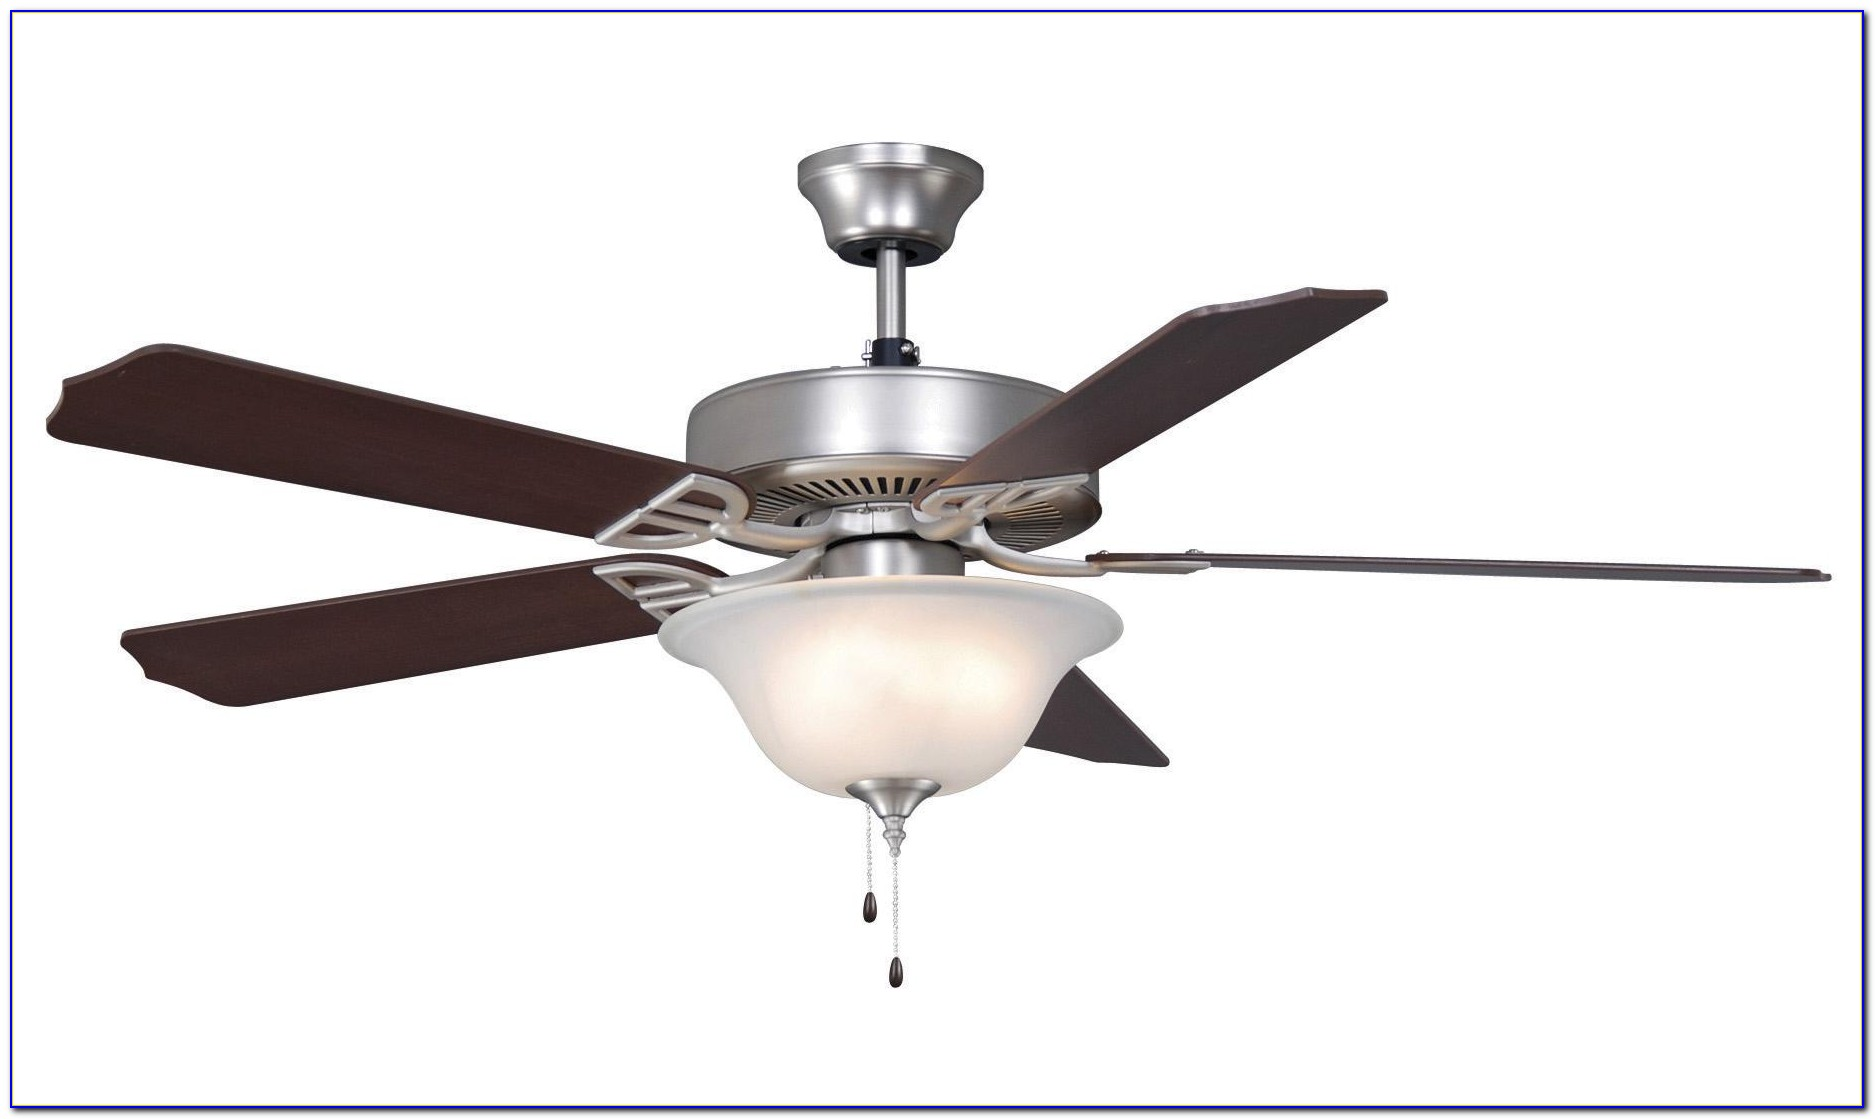 220 Volt Ceiling Fans With Light